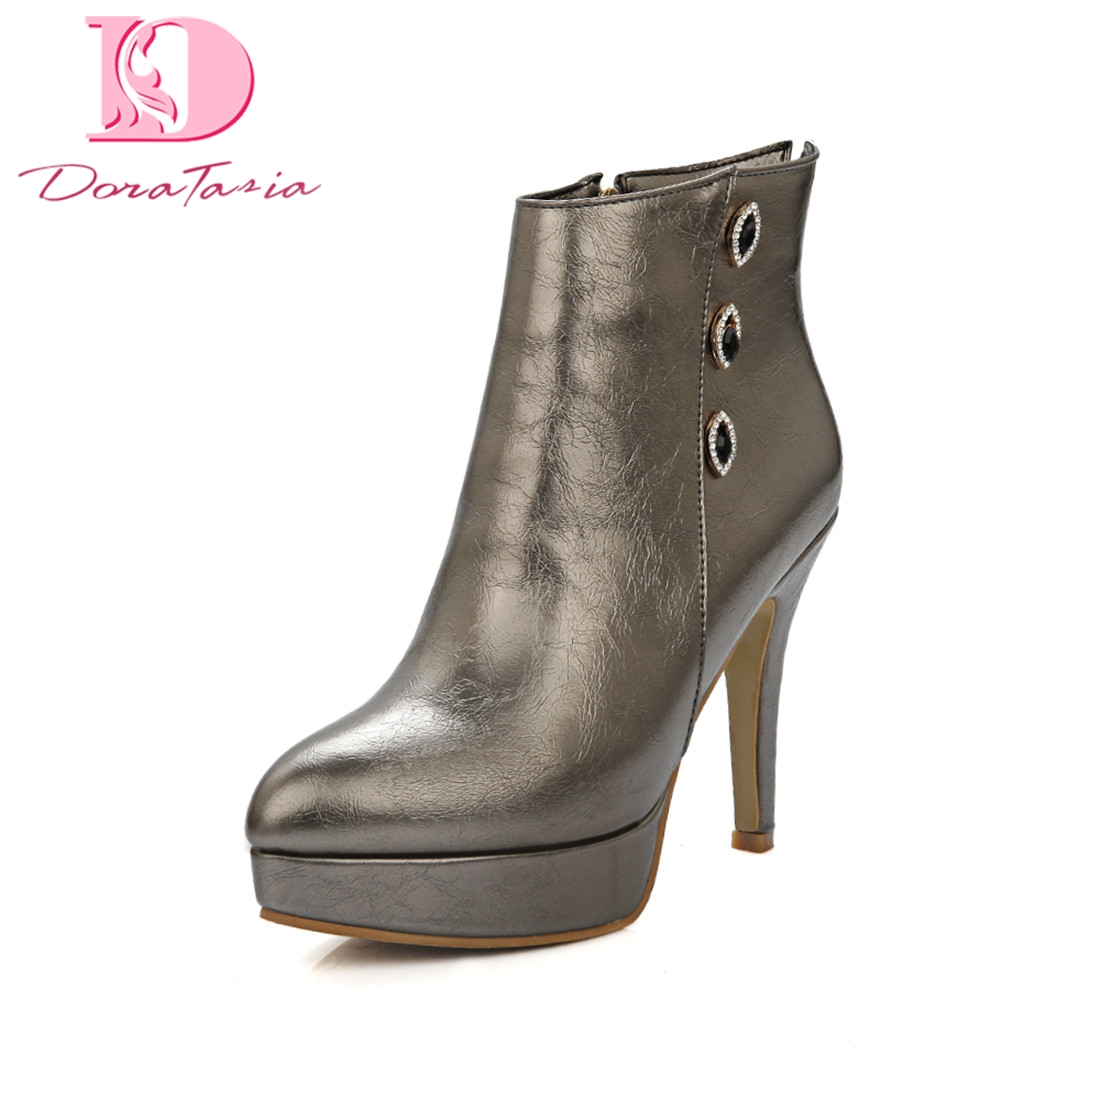 Doratasia 2018 Plus Size 32-46 Wholesale Zip Up party Boots Women Shoes Woman Hot Sale High Heels Ankle Boots Female plus size light up cosplay party skirt